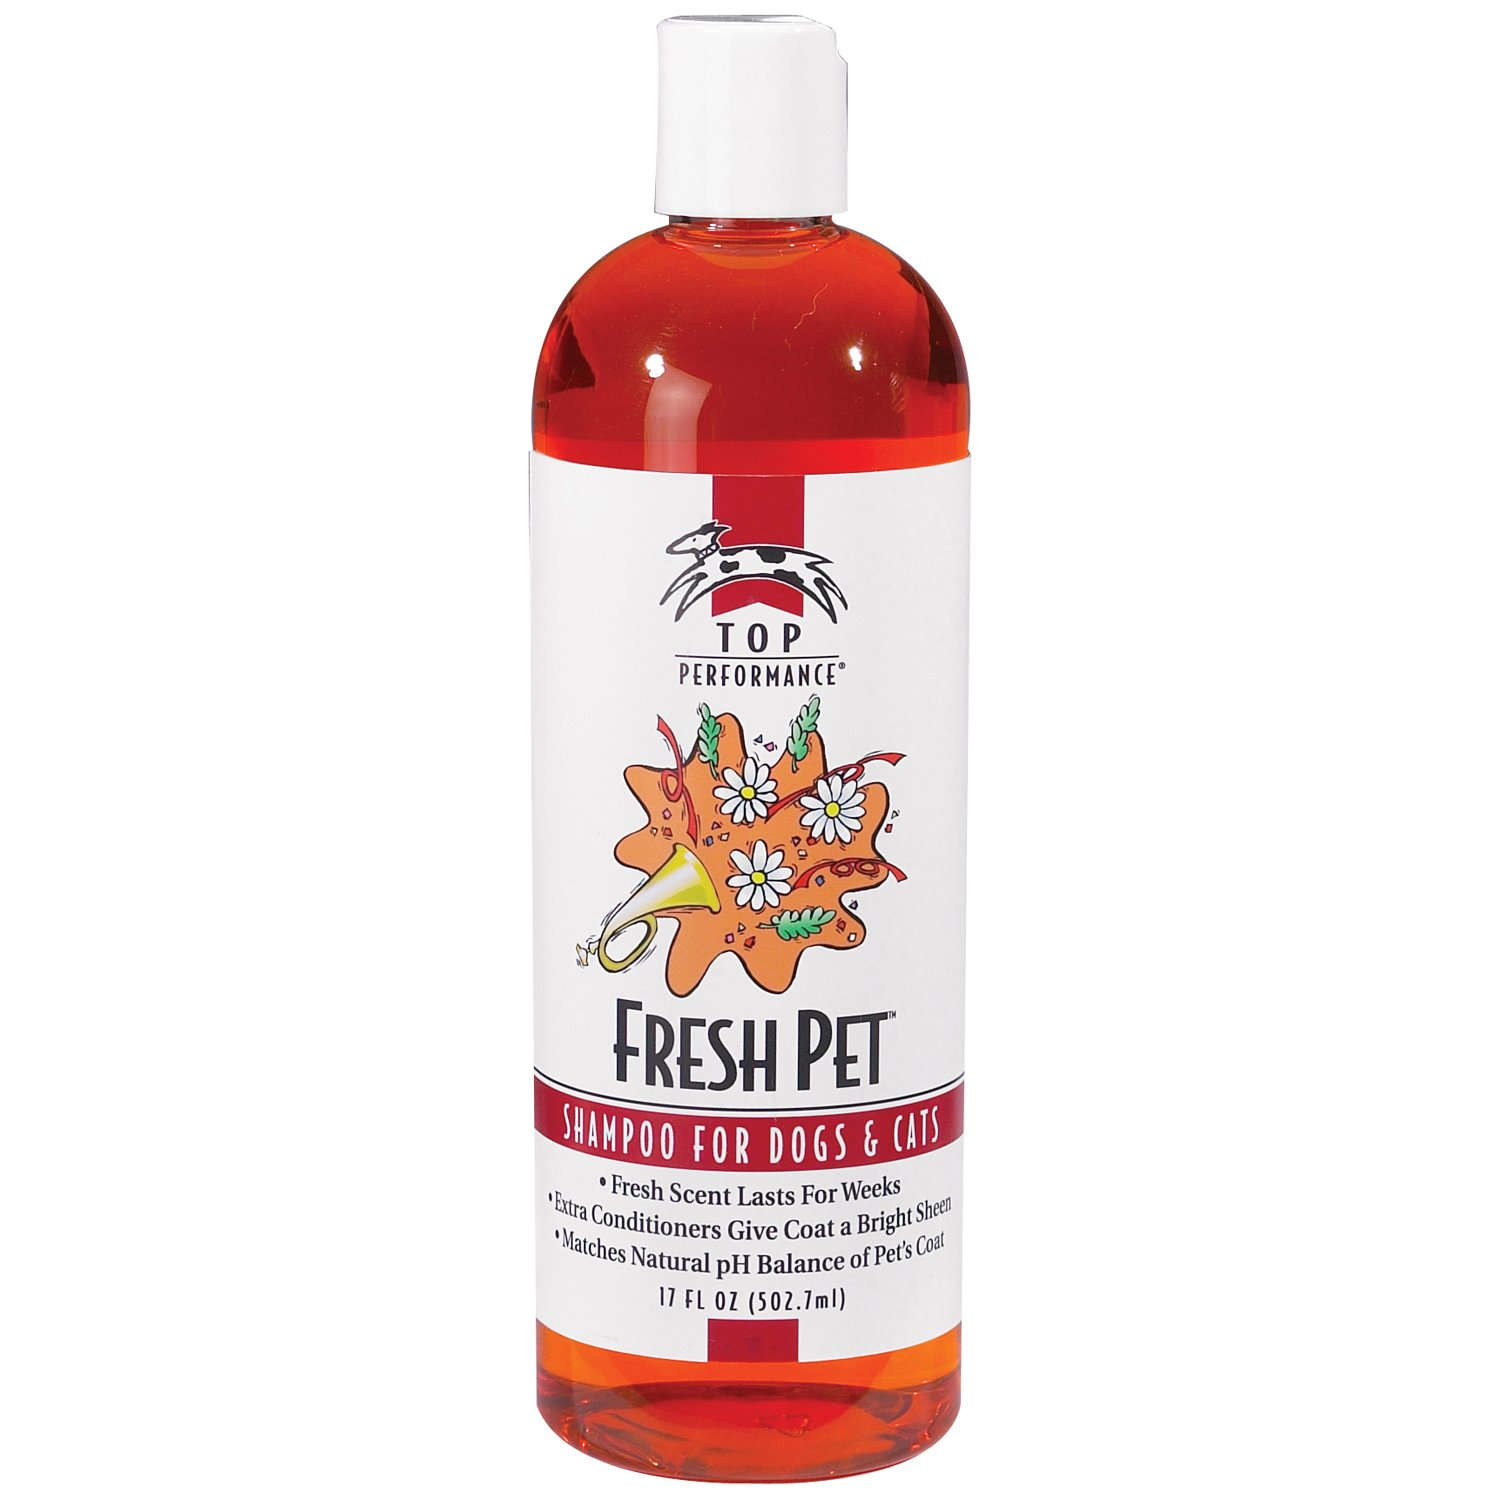 Top Performance Fresh Pet Shampoo Prevents Mats and Tangles - Matches Natural pH Balance of Pet's Coat and Skin, 17 Oz. by Top Performance